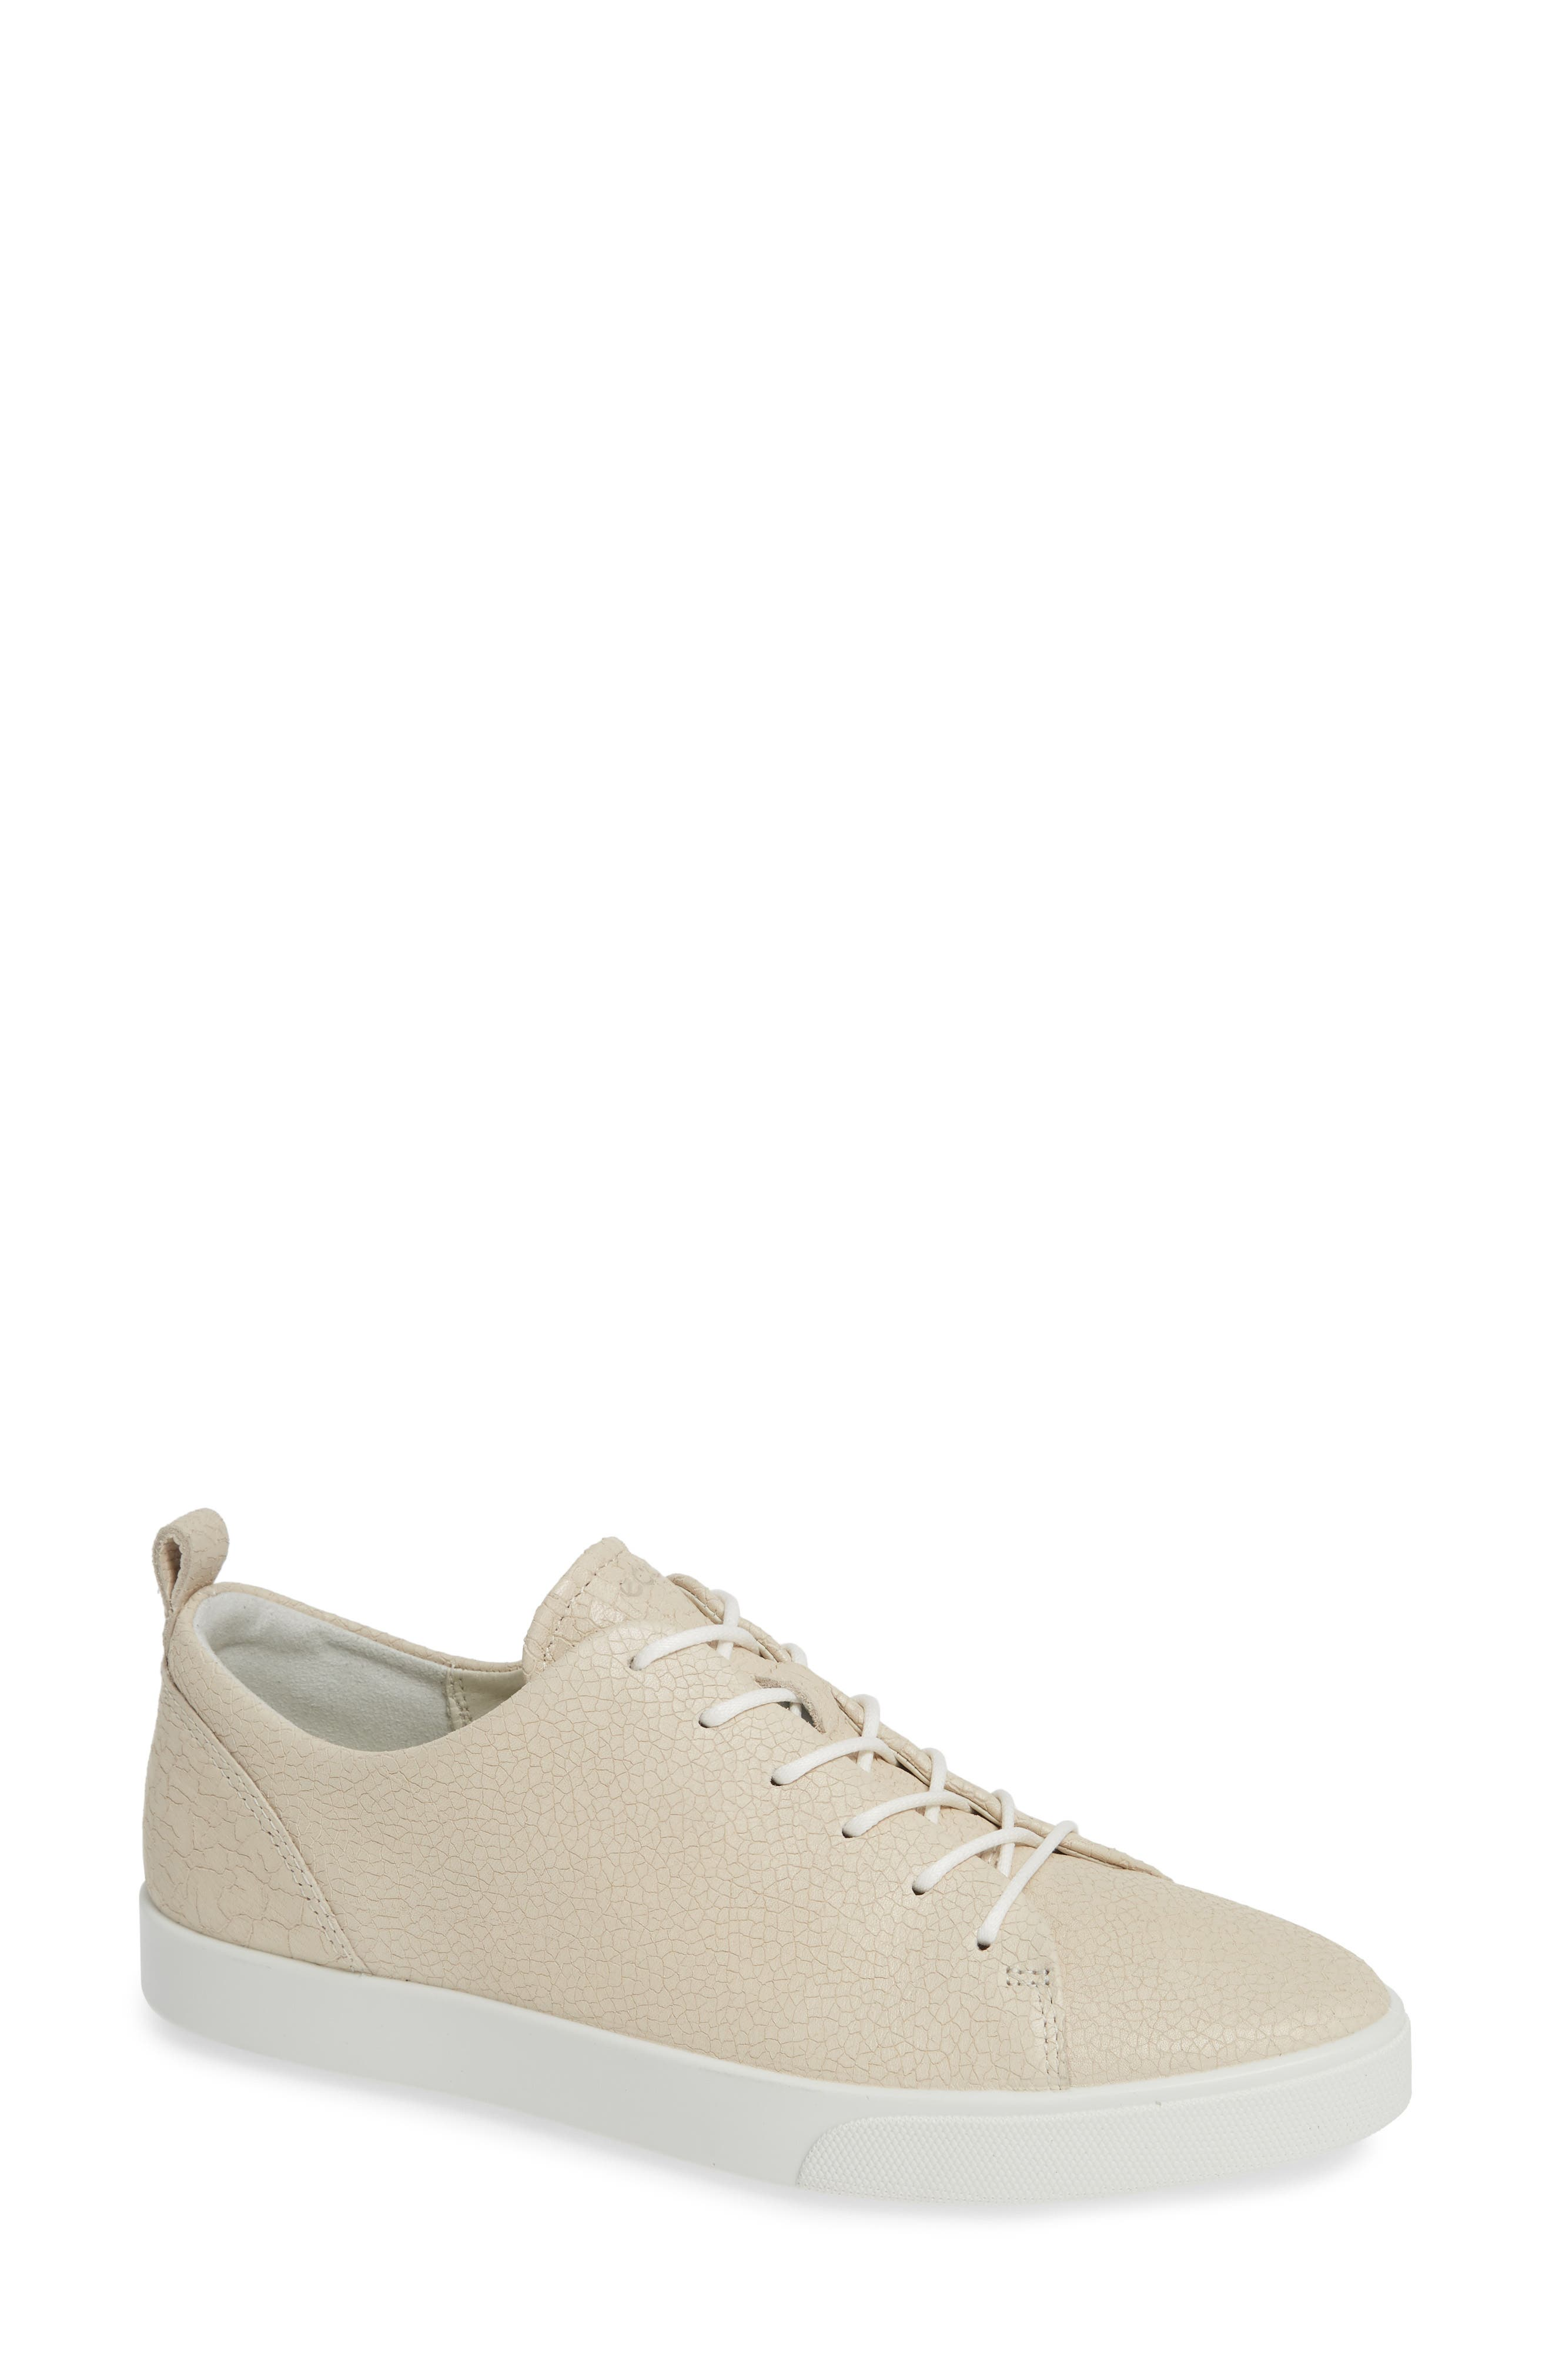 Ecco Gillian Trend Lace-Up Sneaker, Pink